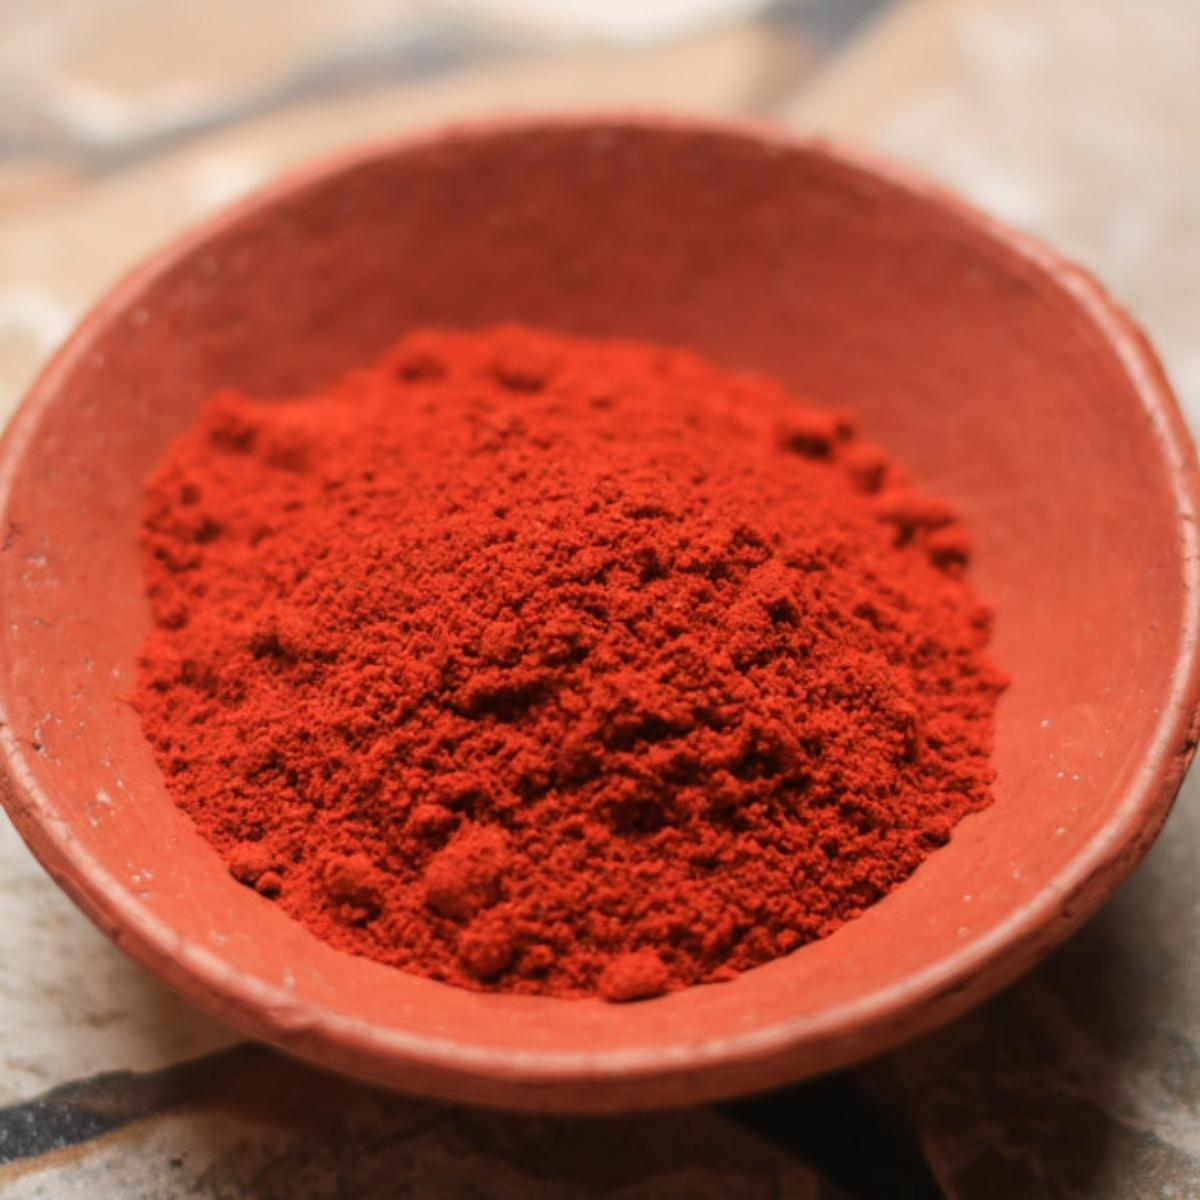 A bowl with bottle masala spice mix.